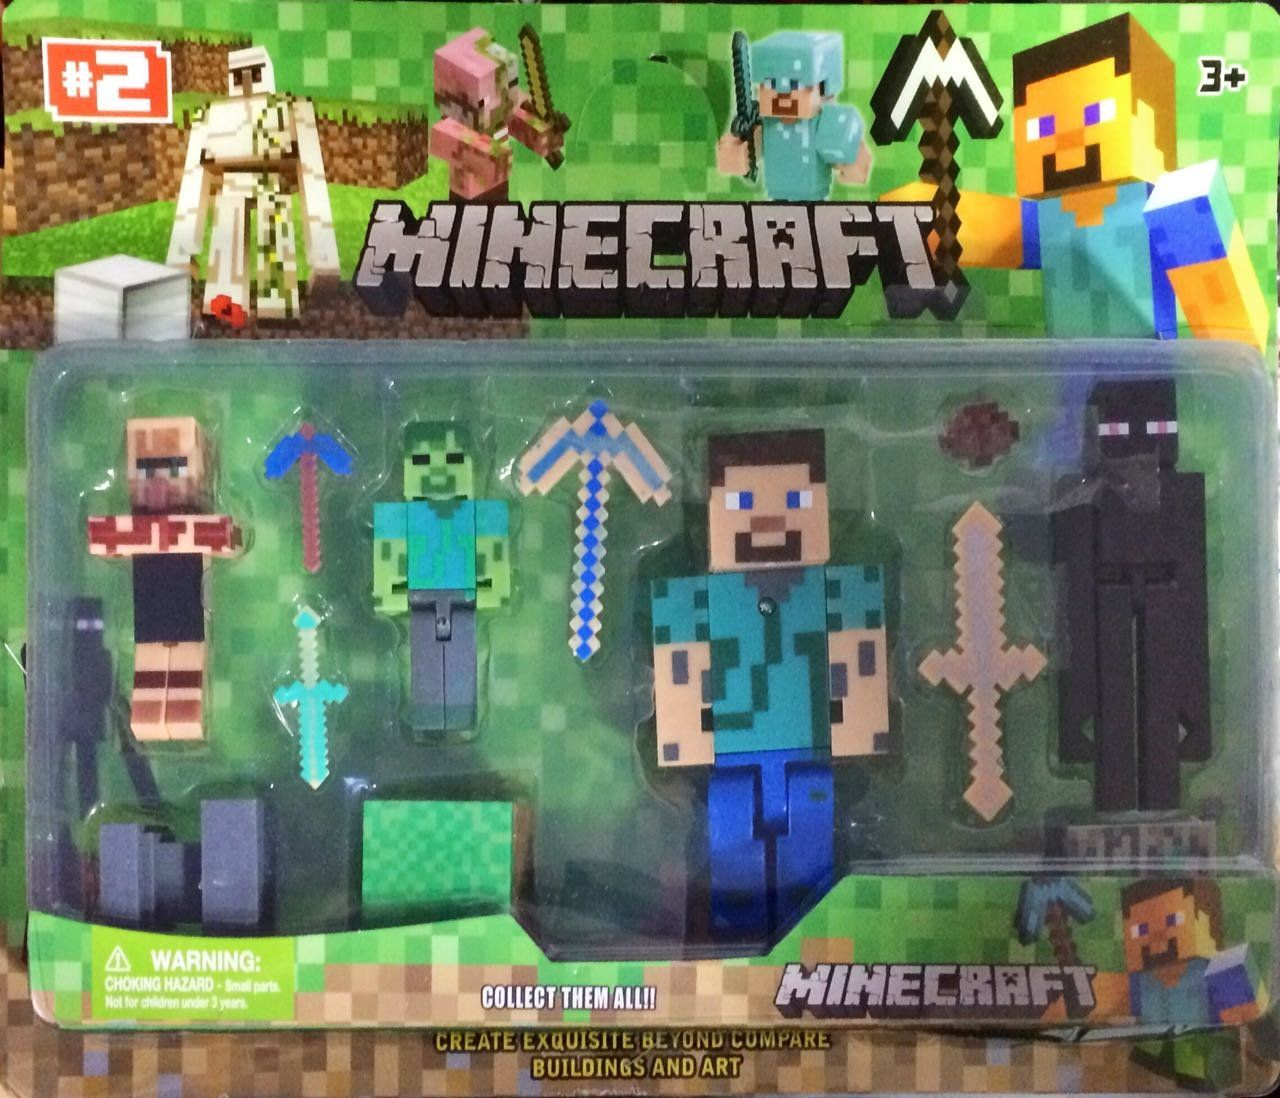 Pack 2 Minecraft 5 Personagens (Uillager-Enderman-Zombies-Esteue With Diamond Armor-Creeper)